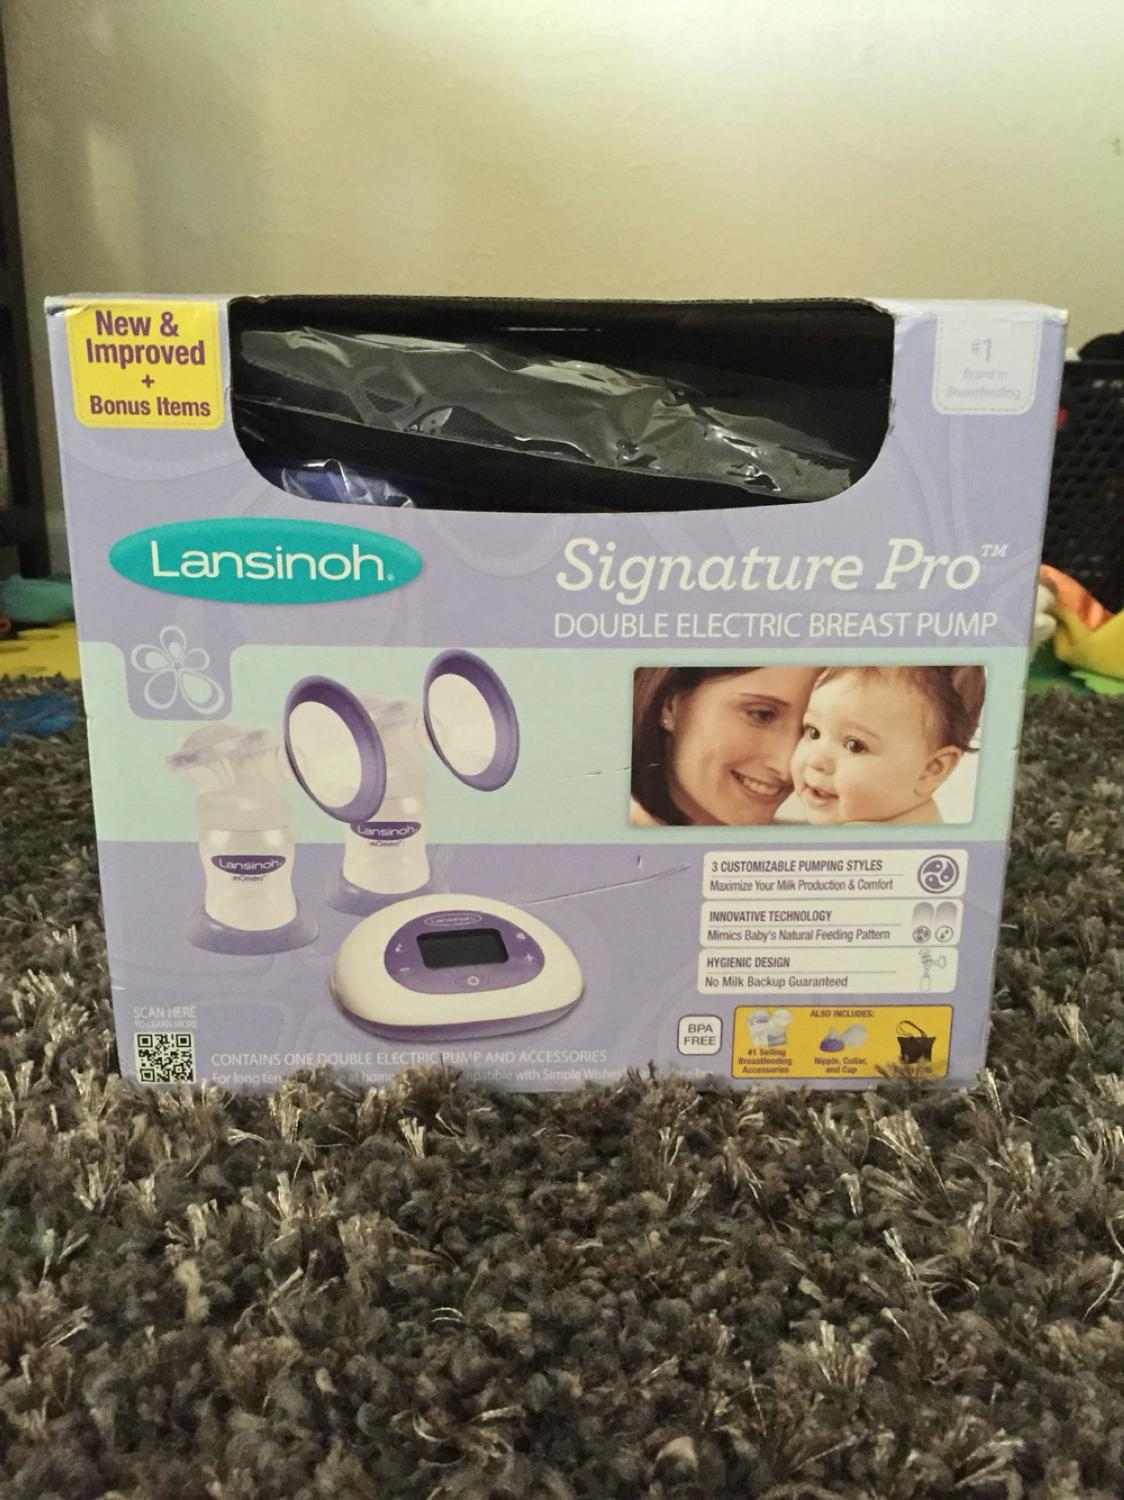 Best Lansinoh Signature Pro Double Electric Breast Pump For Sale